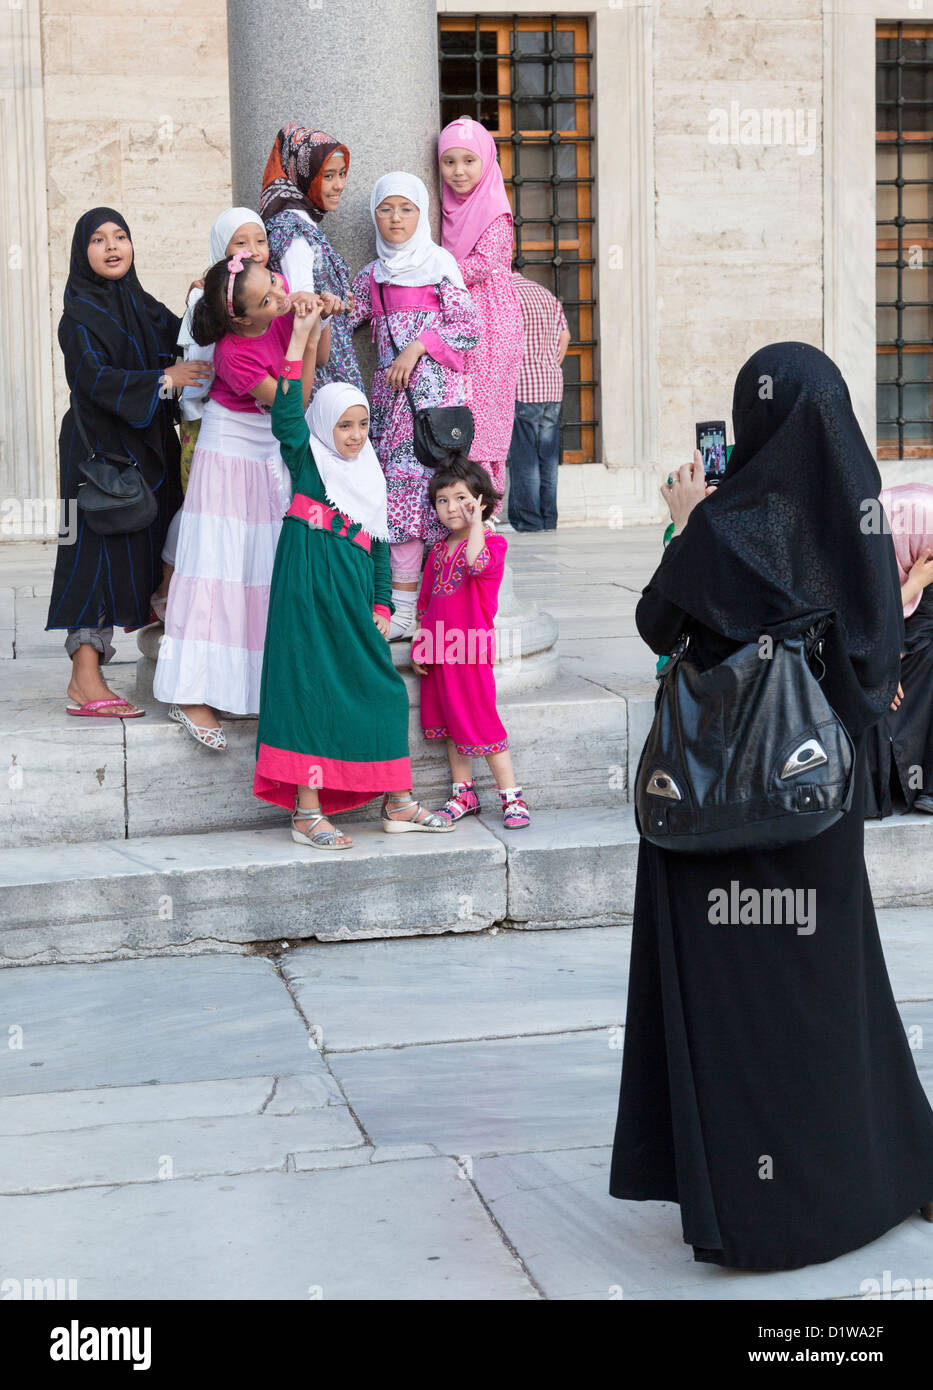 Muslim family posing for photograph, Sultan Ahmet Mosque, Istanbul, Turkey - Stock Image